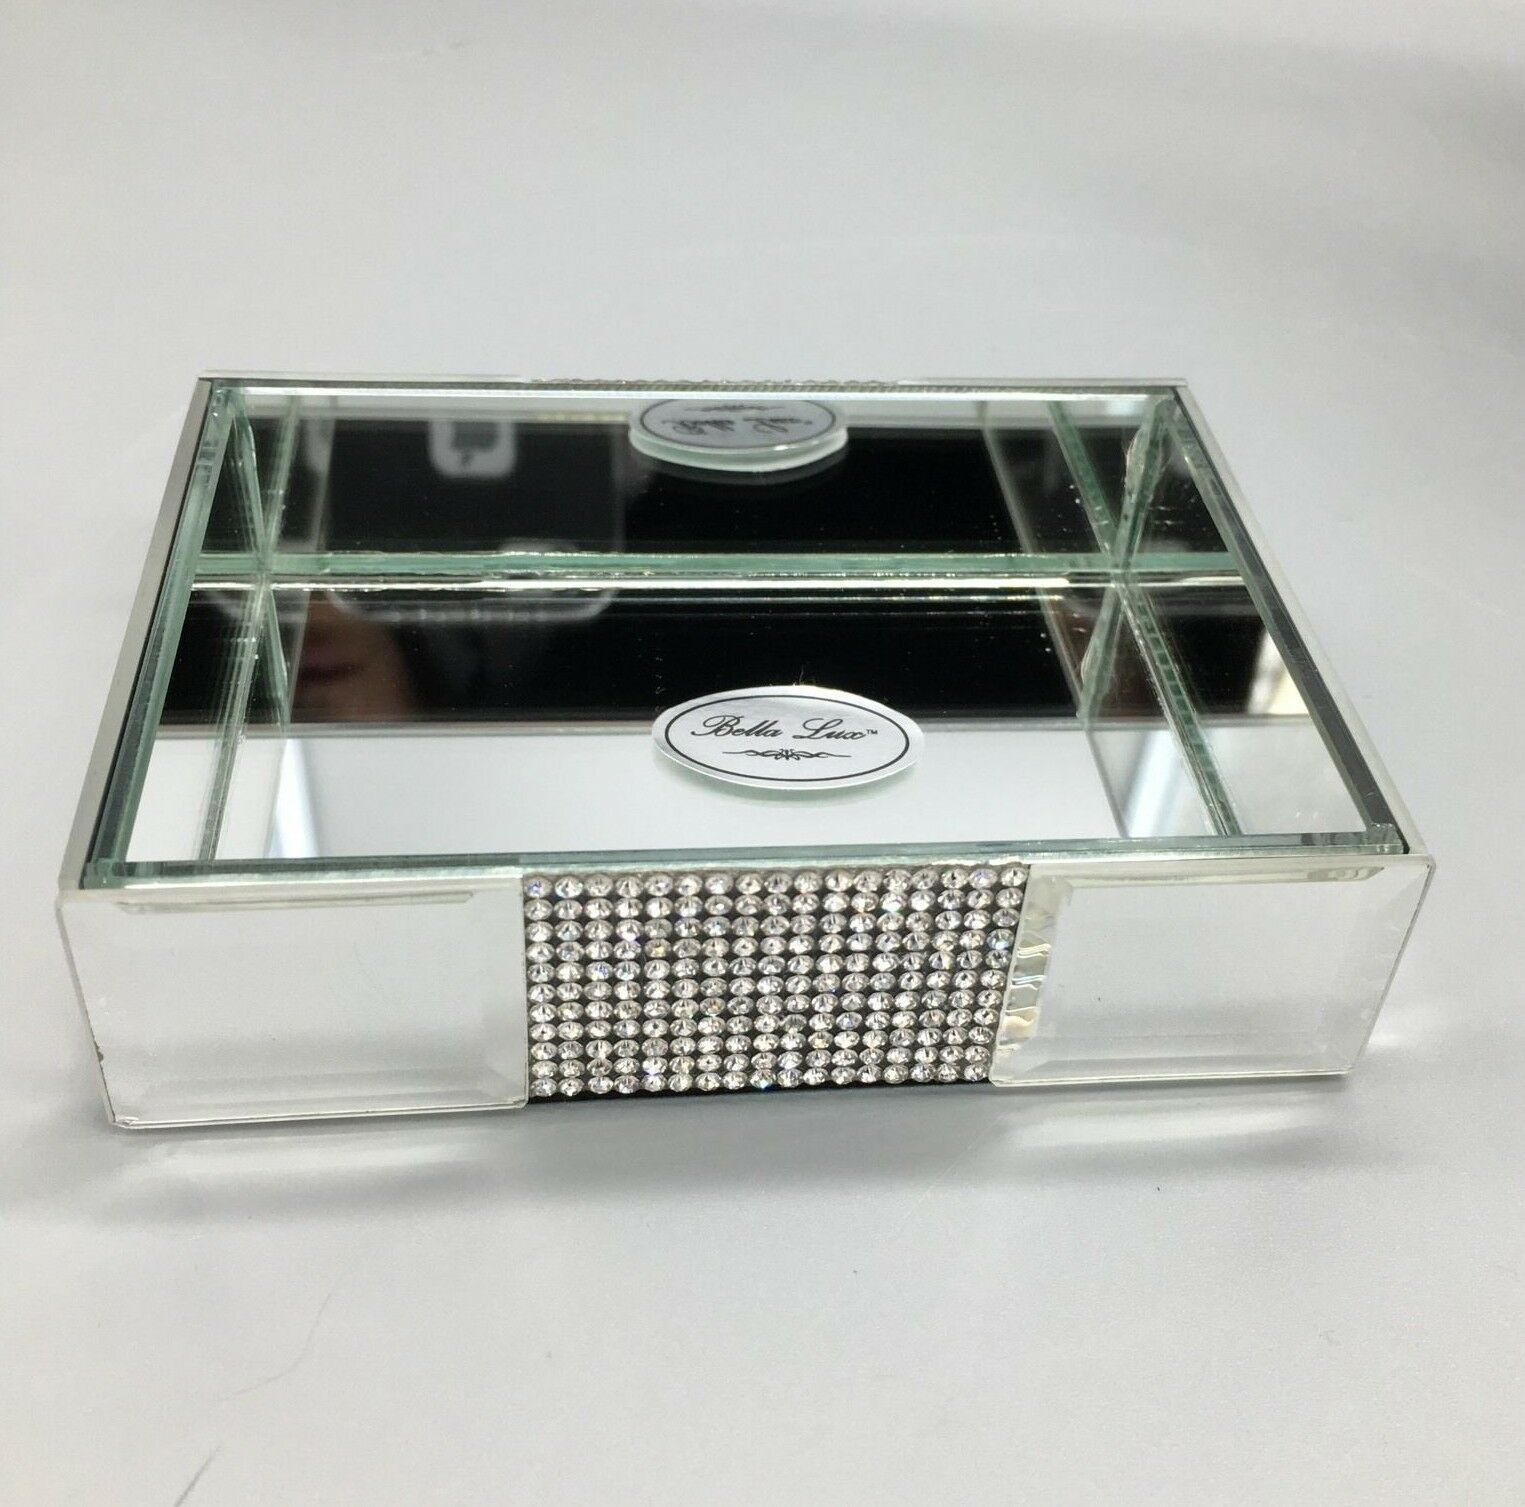 Bella Lux Mirror Rhinestone Crystal Soap Dish Bathroom Bath Vanity Accessory New 1 Of 6only 2 Available